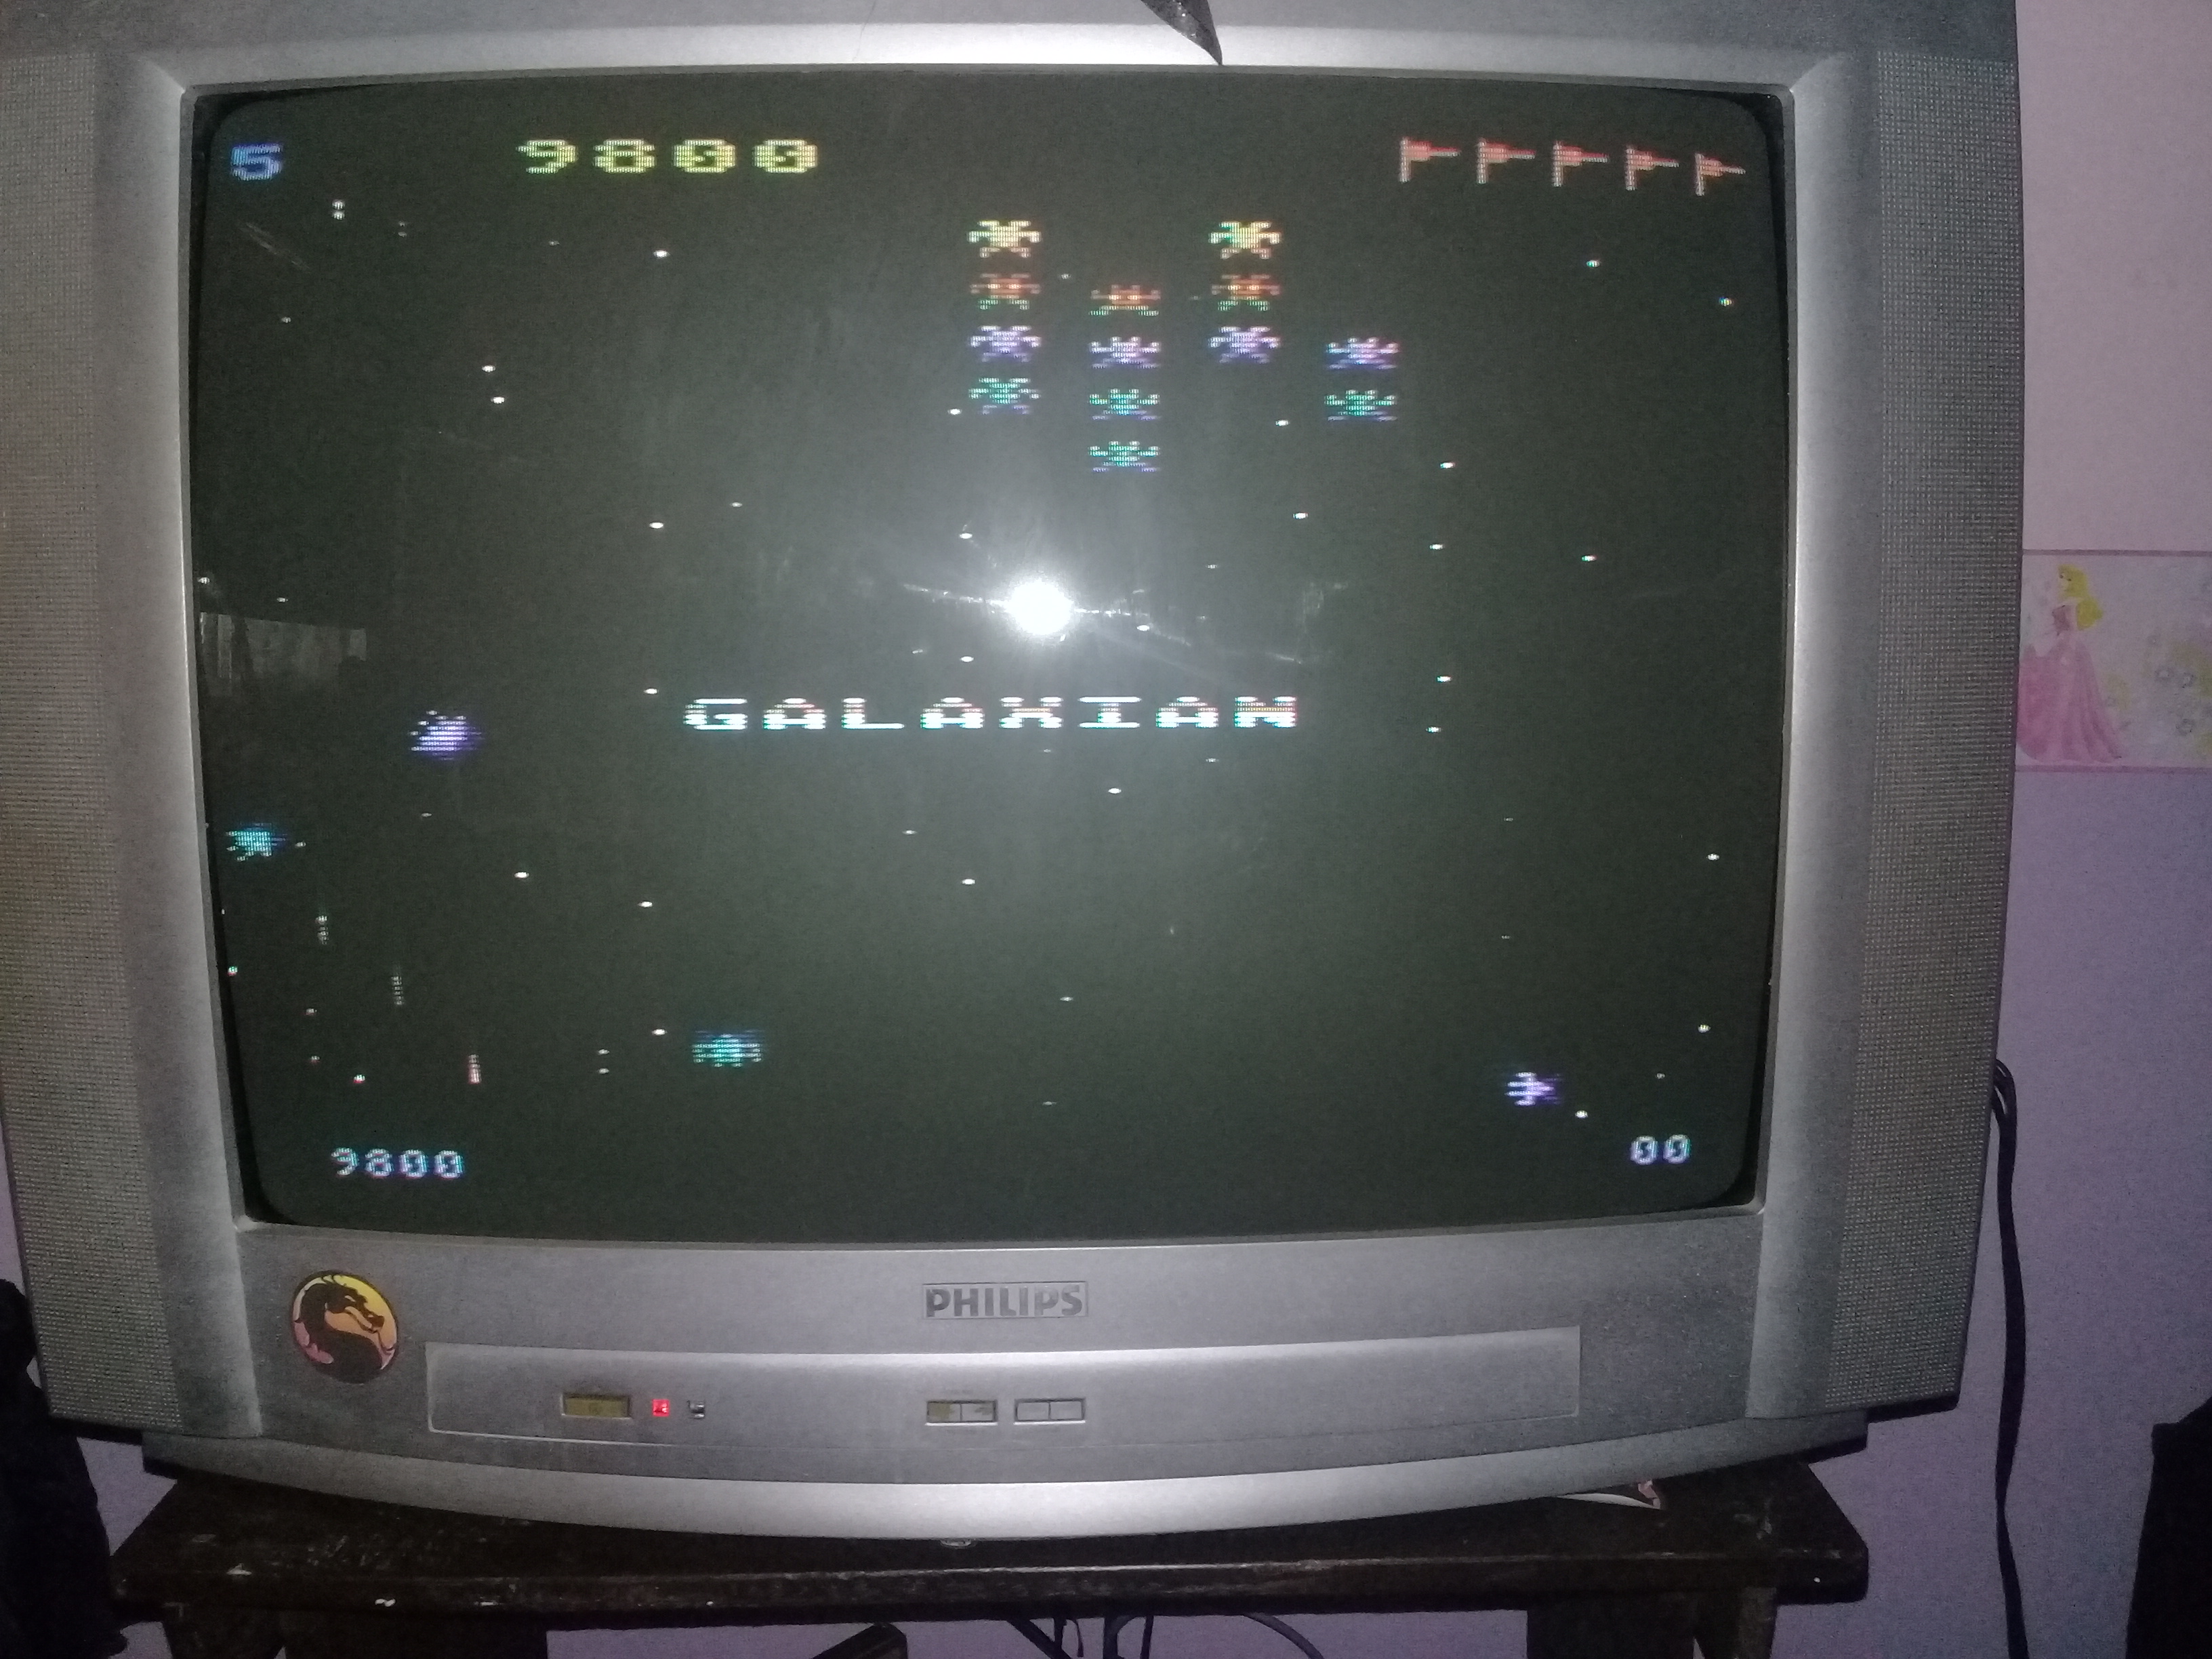 omargeddon: Galaxian [Difficulty: 5] (Atari 400/800/XL/XE) 9,800 points on 2020-03-30 12:01:34